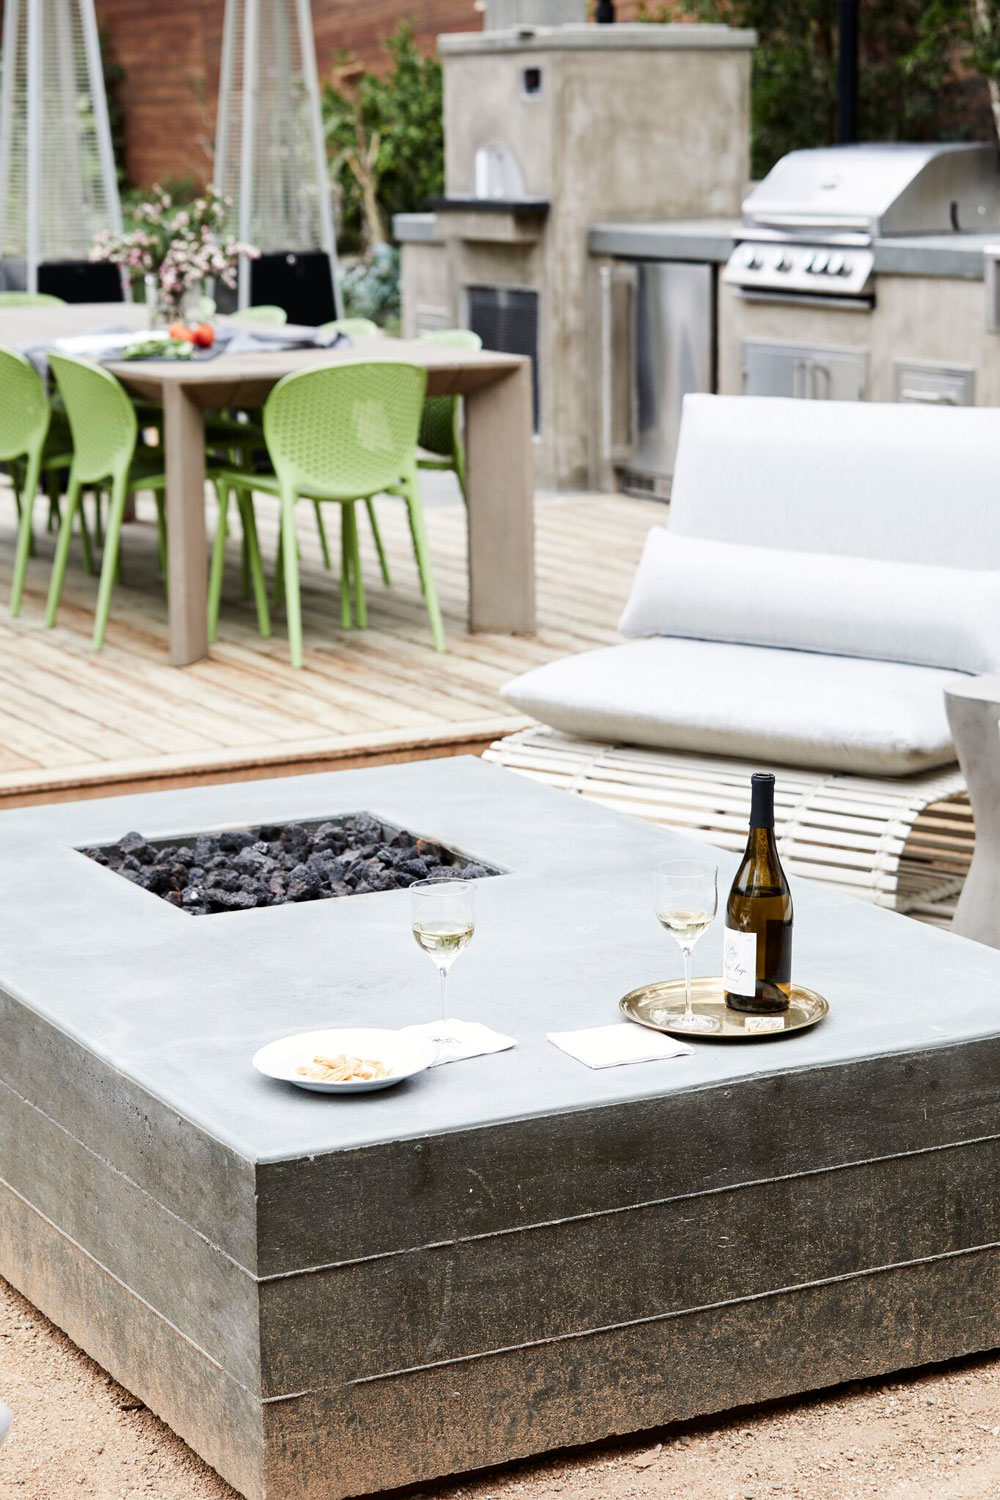 A generous outdoor fireplace with oversized lounge chairs becomes the perfect spot to keep warm on cool evenings.